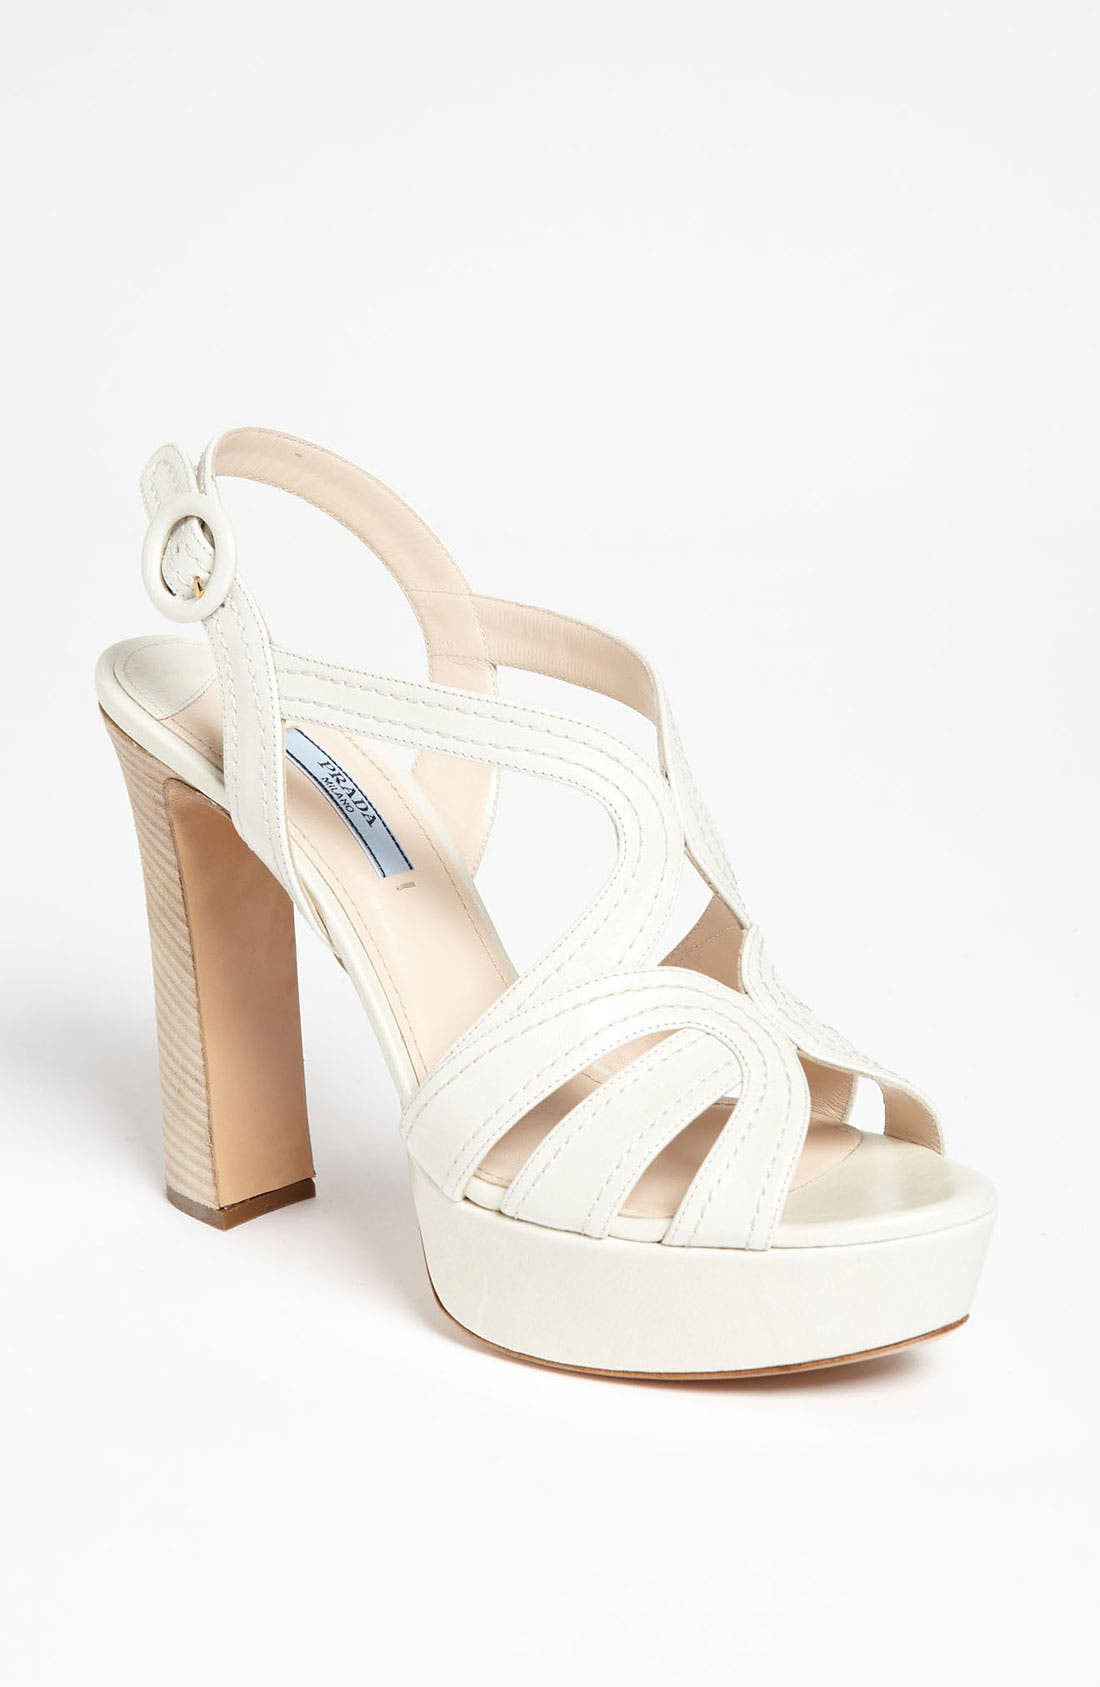 Blonde Heel Sandal,                             Main thumbnail 1, color,                             White